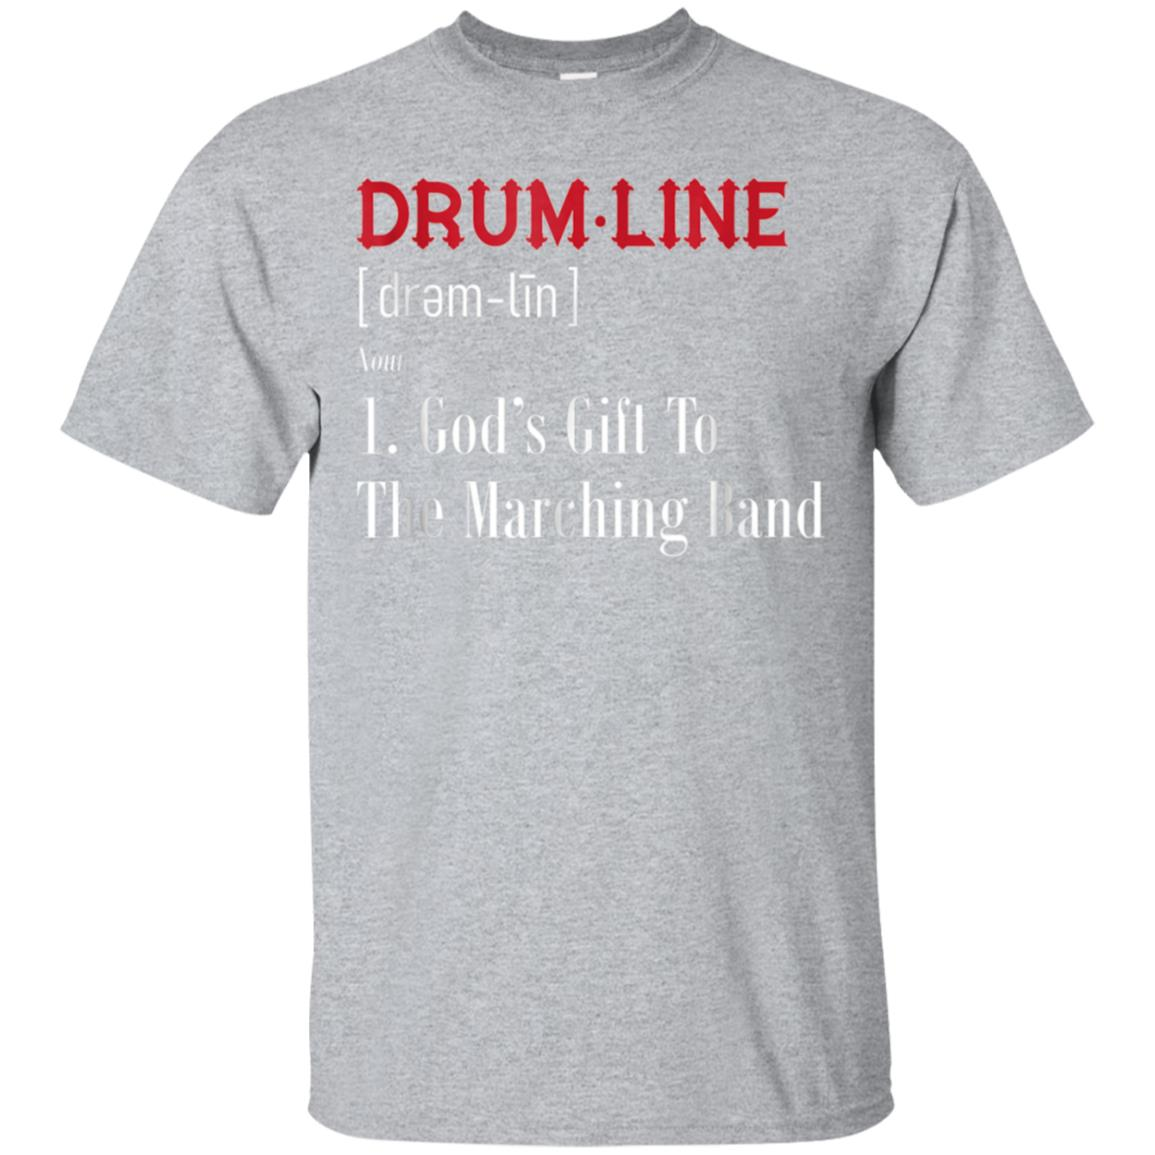 Drumline Definition Shirt For Percussion Players 99promocode